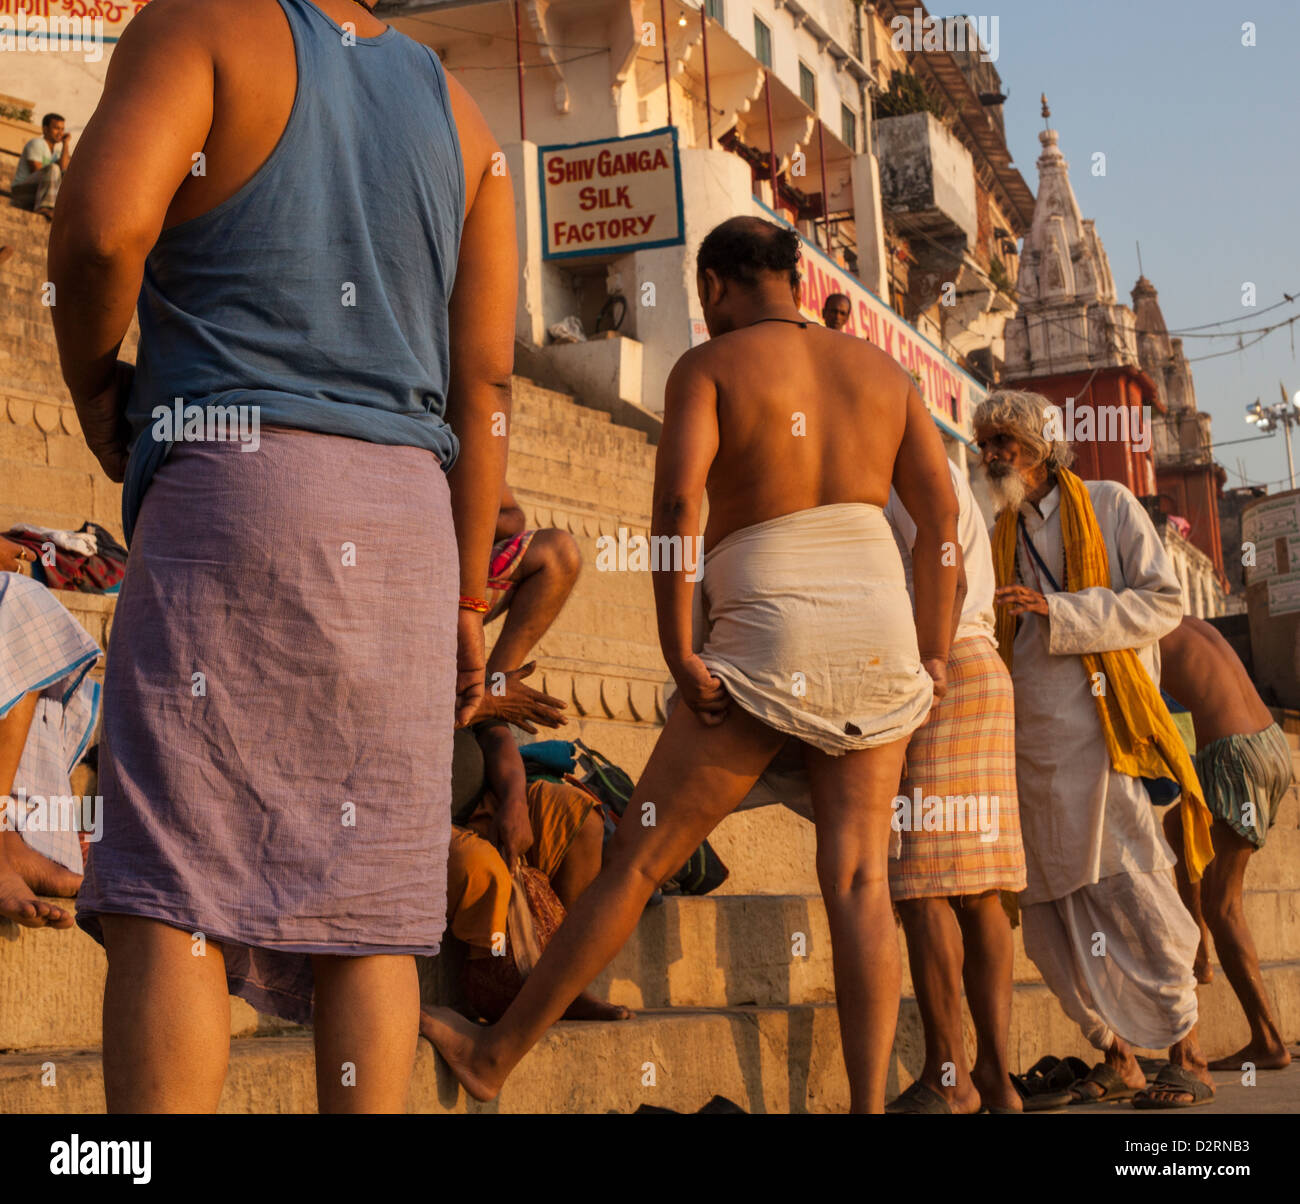 bath hindu single men Men taking bath in ganges, varanasi myradio loading unsubscribe from myradio indian hindu pilgrims bathing in the ganges river.